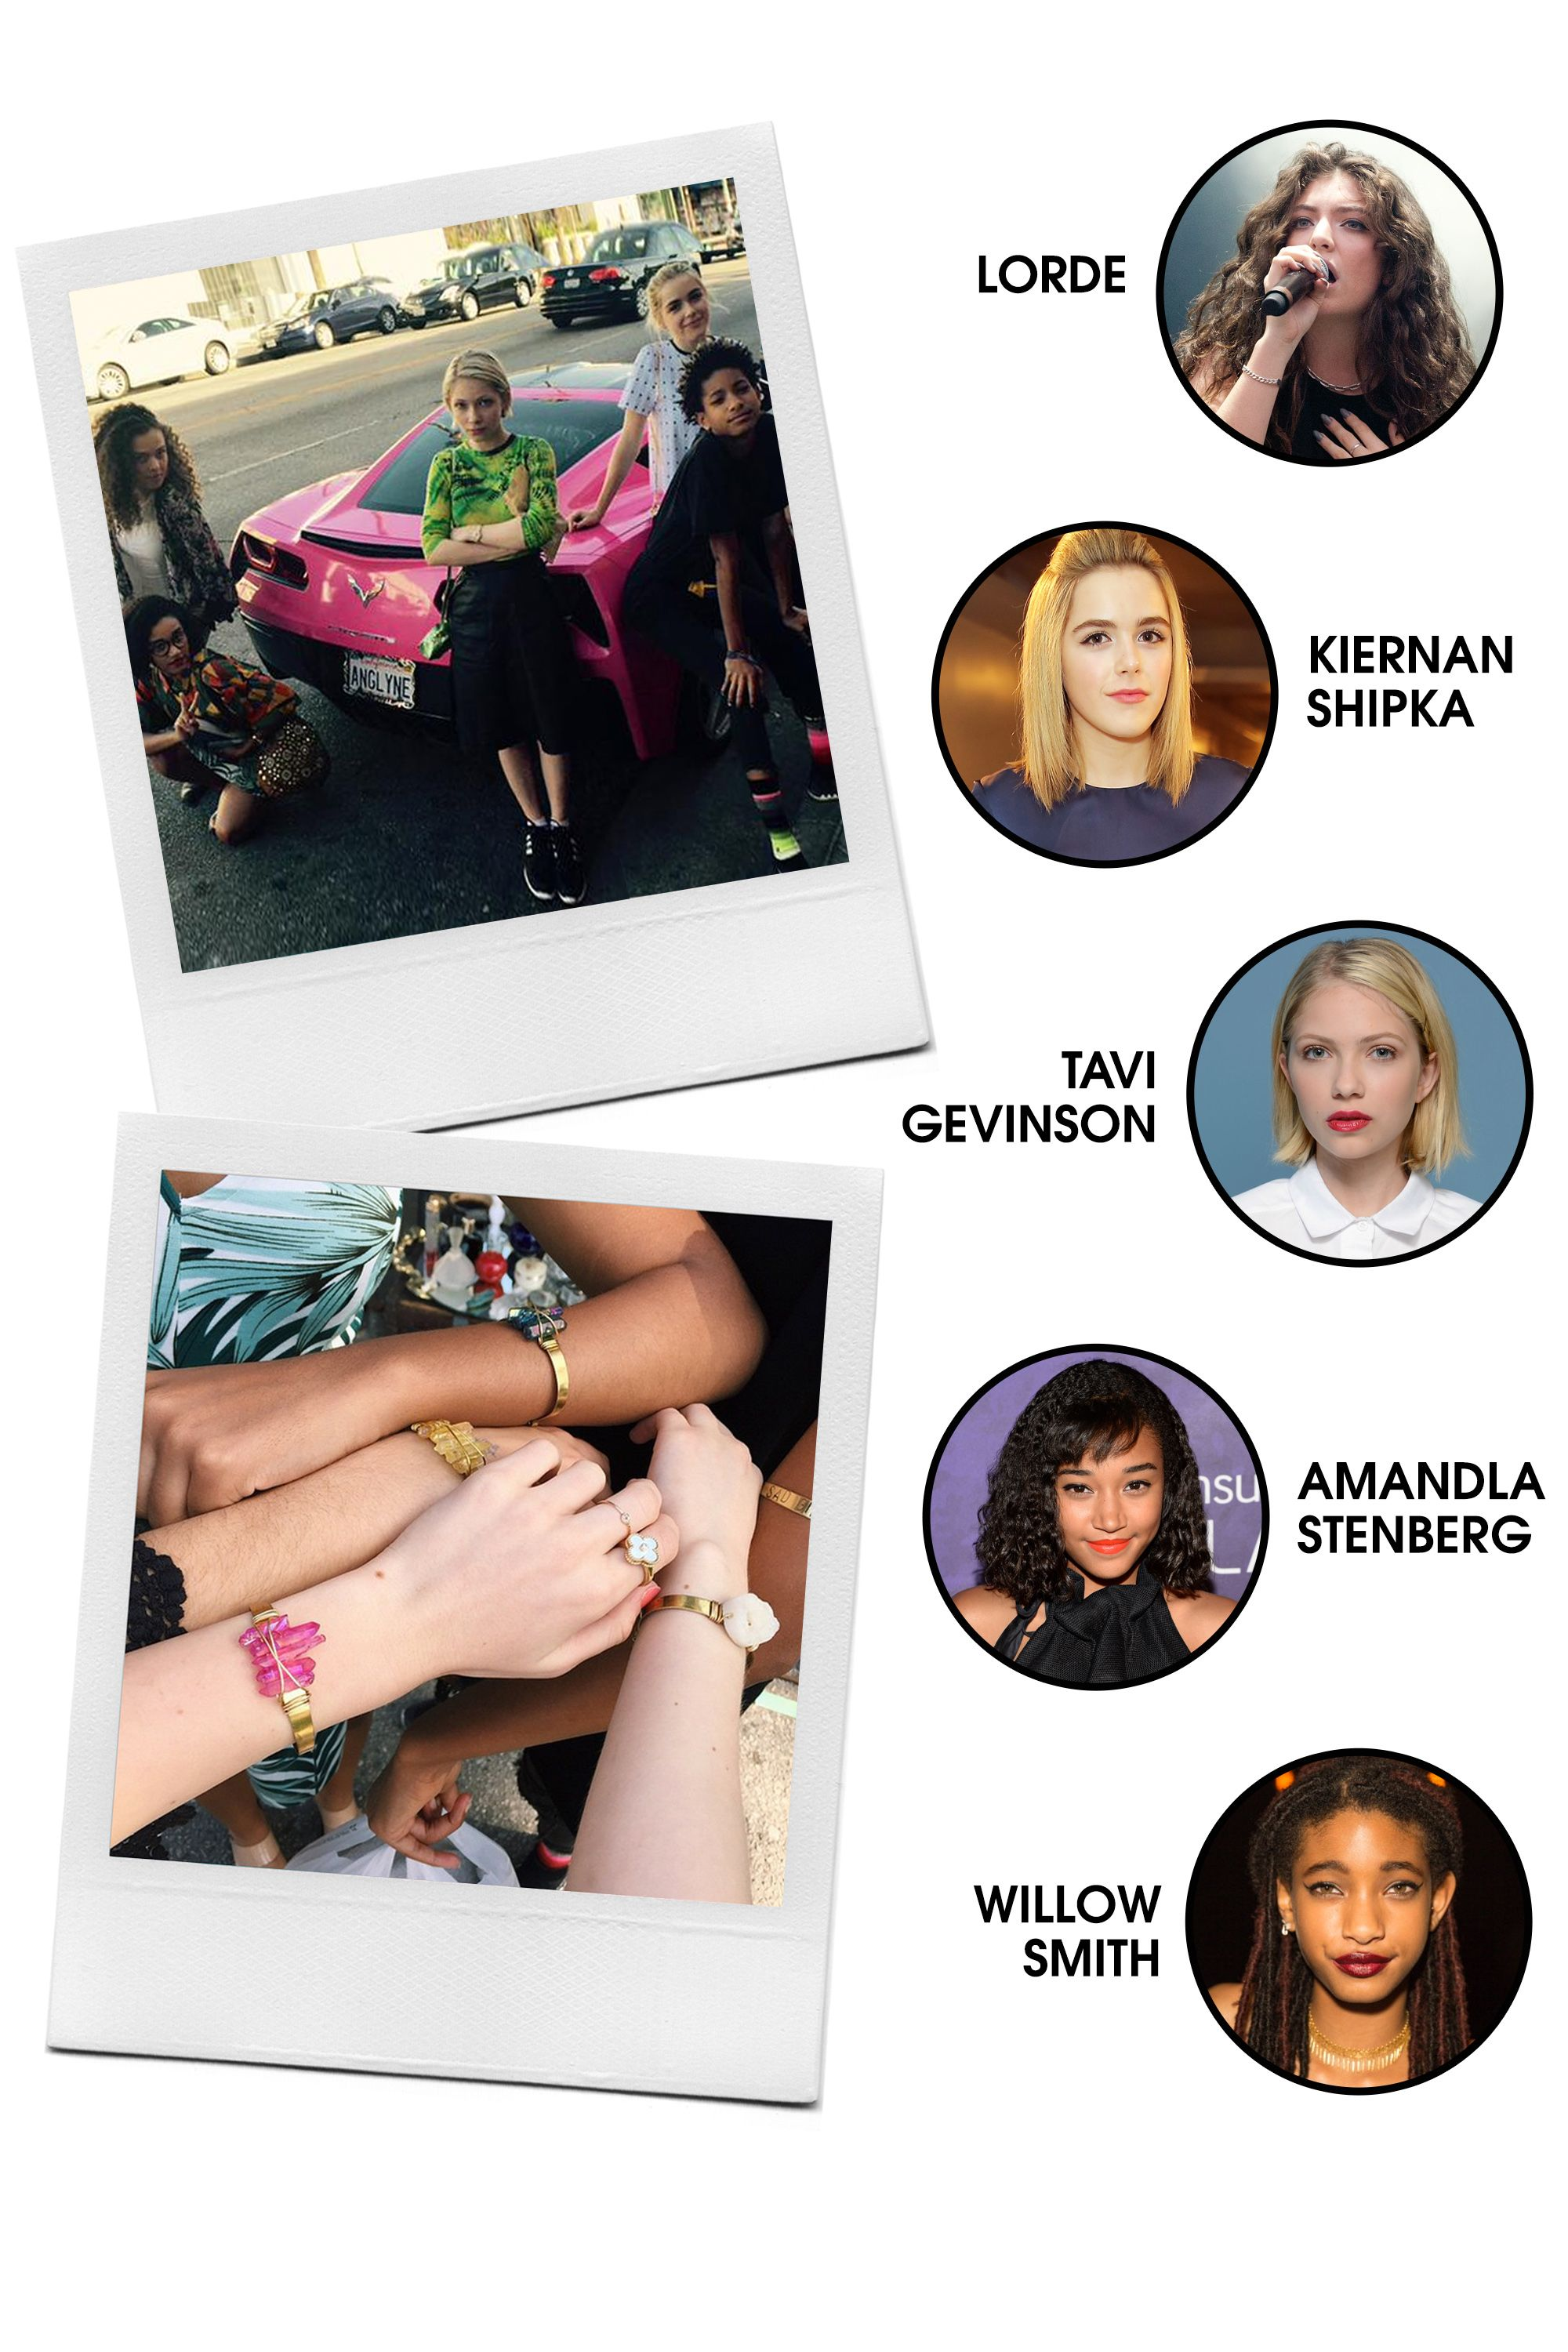 """This close-knit bunch is young Hollywood's good girl group, all holding the common thread of being bona fide breakout stars: Shipka as Sally Draper in <em>Mad Men</em>, Stenberg as Rue in <em>The Hunger Games</em>, Smith from her ultra-famous family, Gevinson as a media whiz and actress on the rise, and Lorde, as well, Lorde.  <strong>All-Around Vibe: </strong>Eloquence and industry-savvy beyond their years and all-around sweetness.  <strong>Preferred PDA: </strong>Trips to the flea market and most recently, <a target=""""_blank"""" href=""""https://instagram.com/p/1HX9AlG_Rs/?taken-by=tavitulle"""">matching friendship bracelets</a>.  <strong>Signature Look: </strong>Cute and eclectic, and at times edgy.  <strong>Fringe Members: </strong>Hailee Steinfeld, <em>Homeland</em>'s Morgan Saylor"""